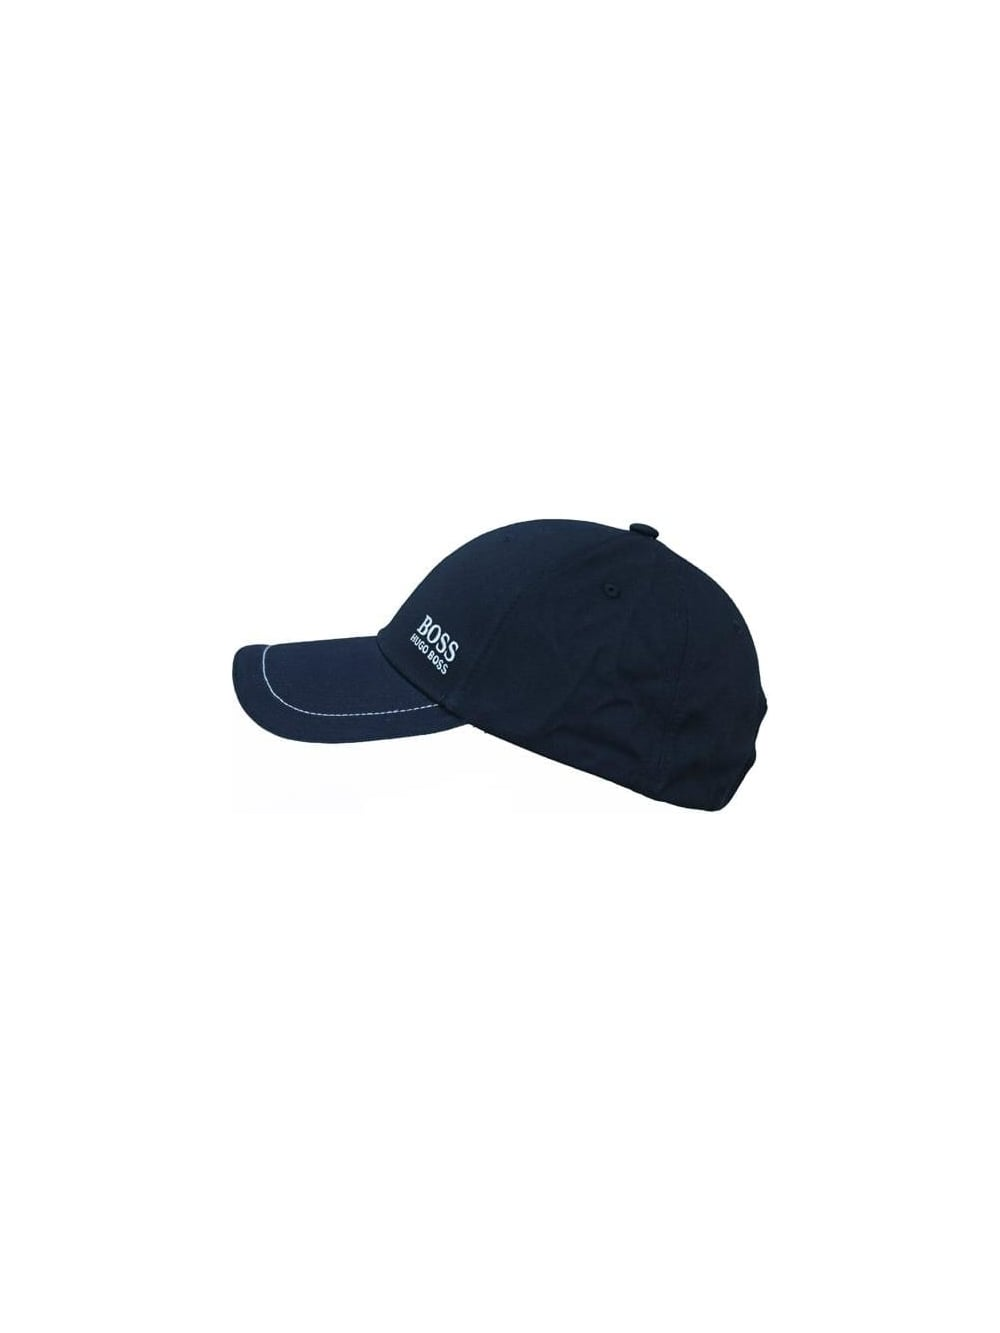 991c374c54368 Hugo Boss Green Cap 1 in Navy - Northern Threads